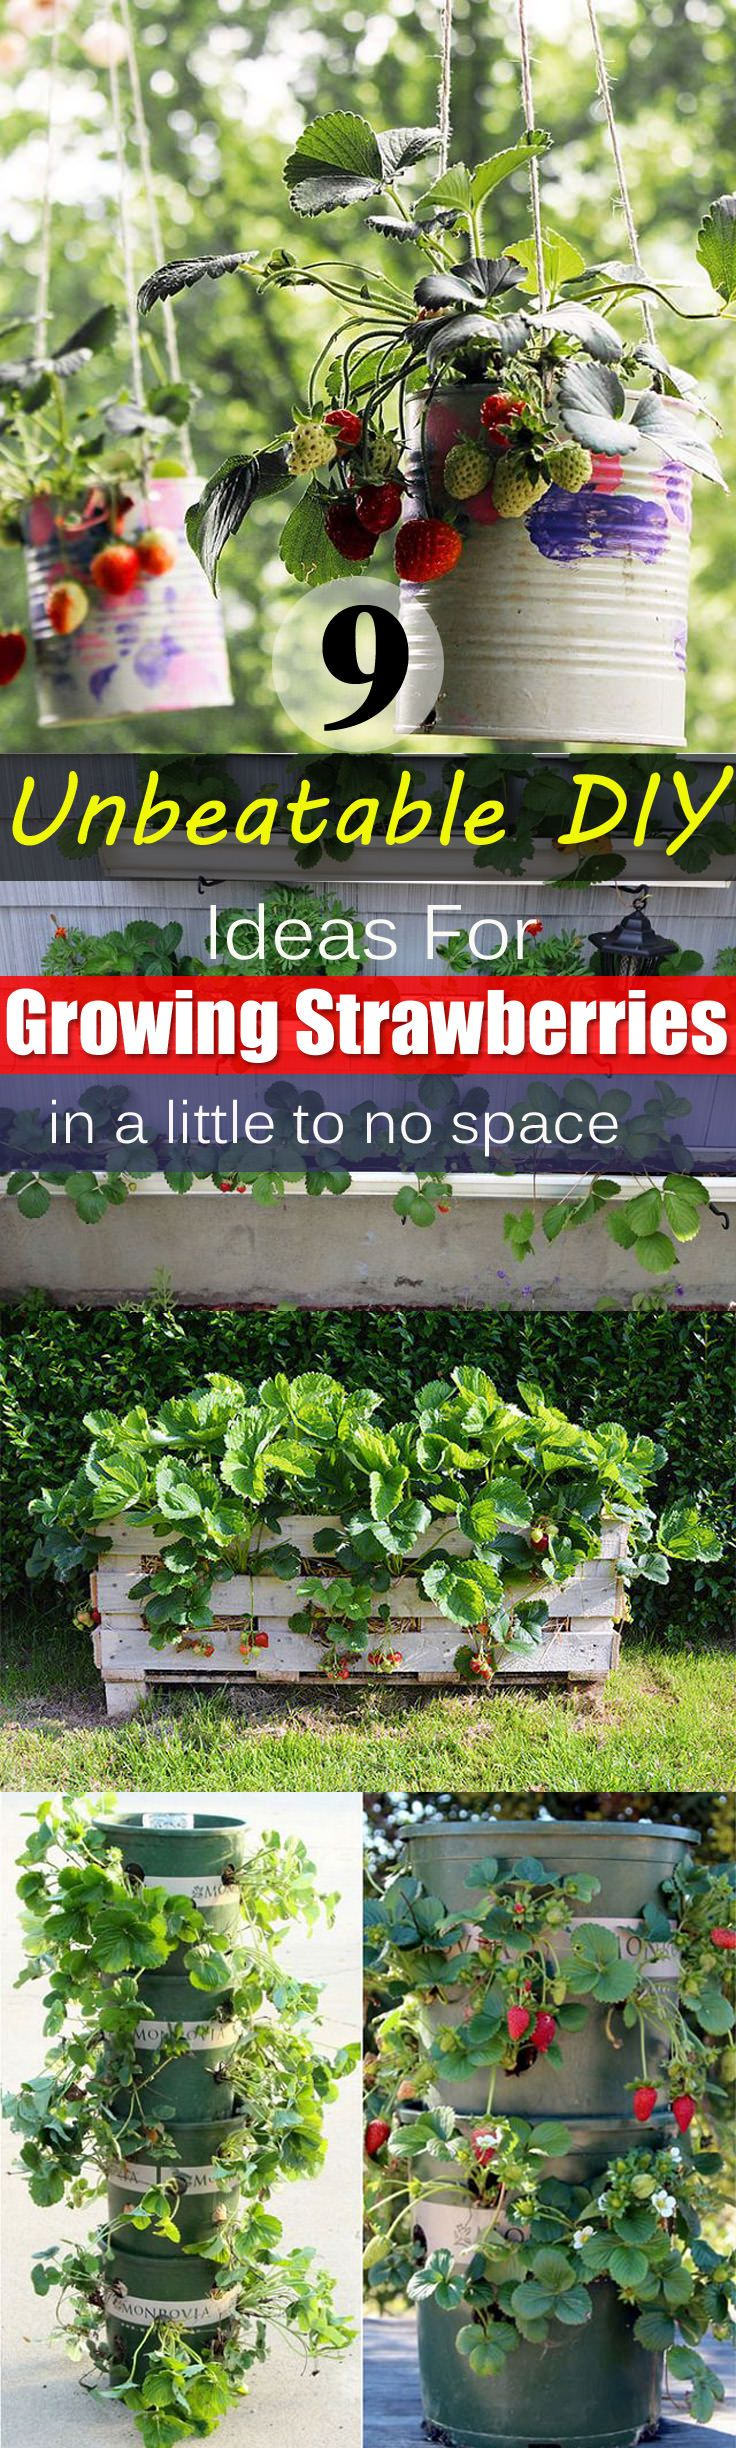 Genial Growing A Little To No Space Withvegetable Garden Container Ideas Vegetable Garden Container Container Gardening Free Unbeatable Diy Ideas garden Diy Gardening Containers